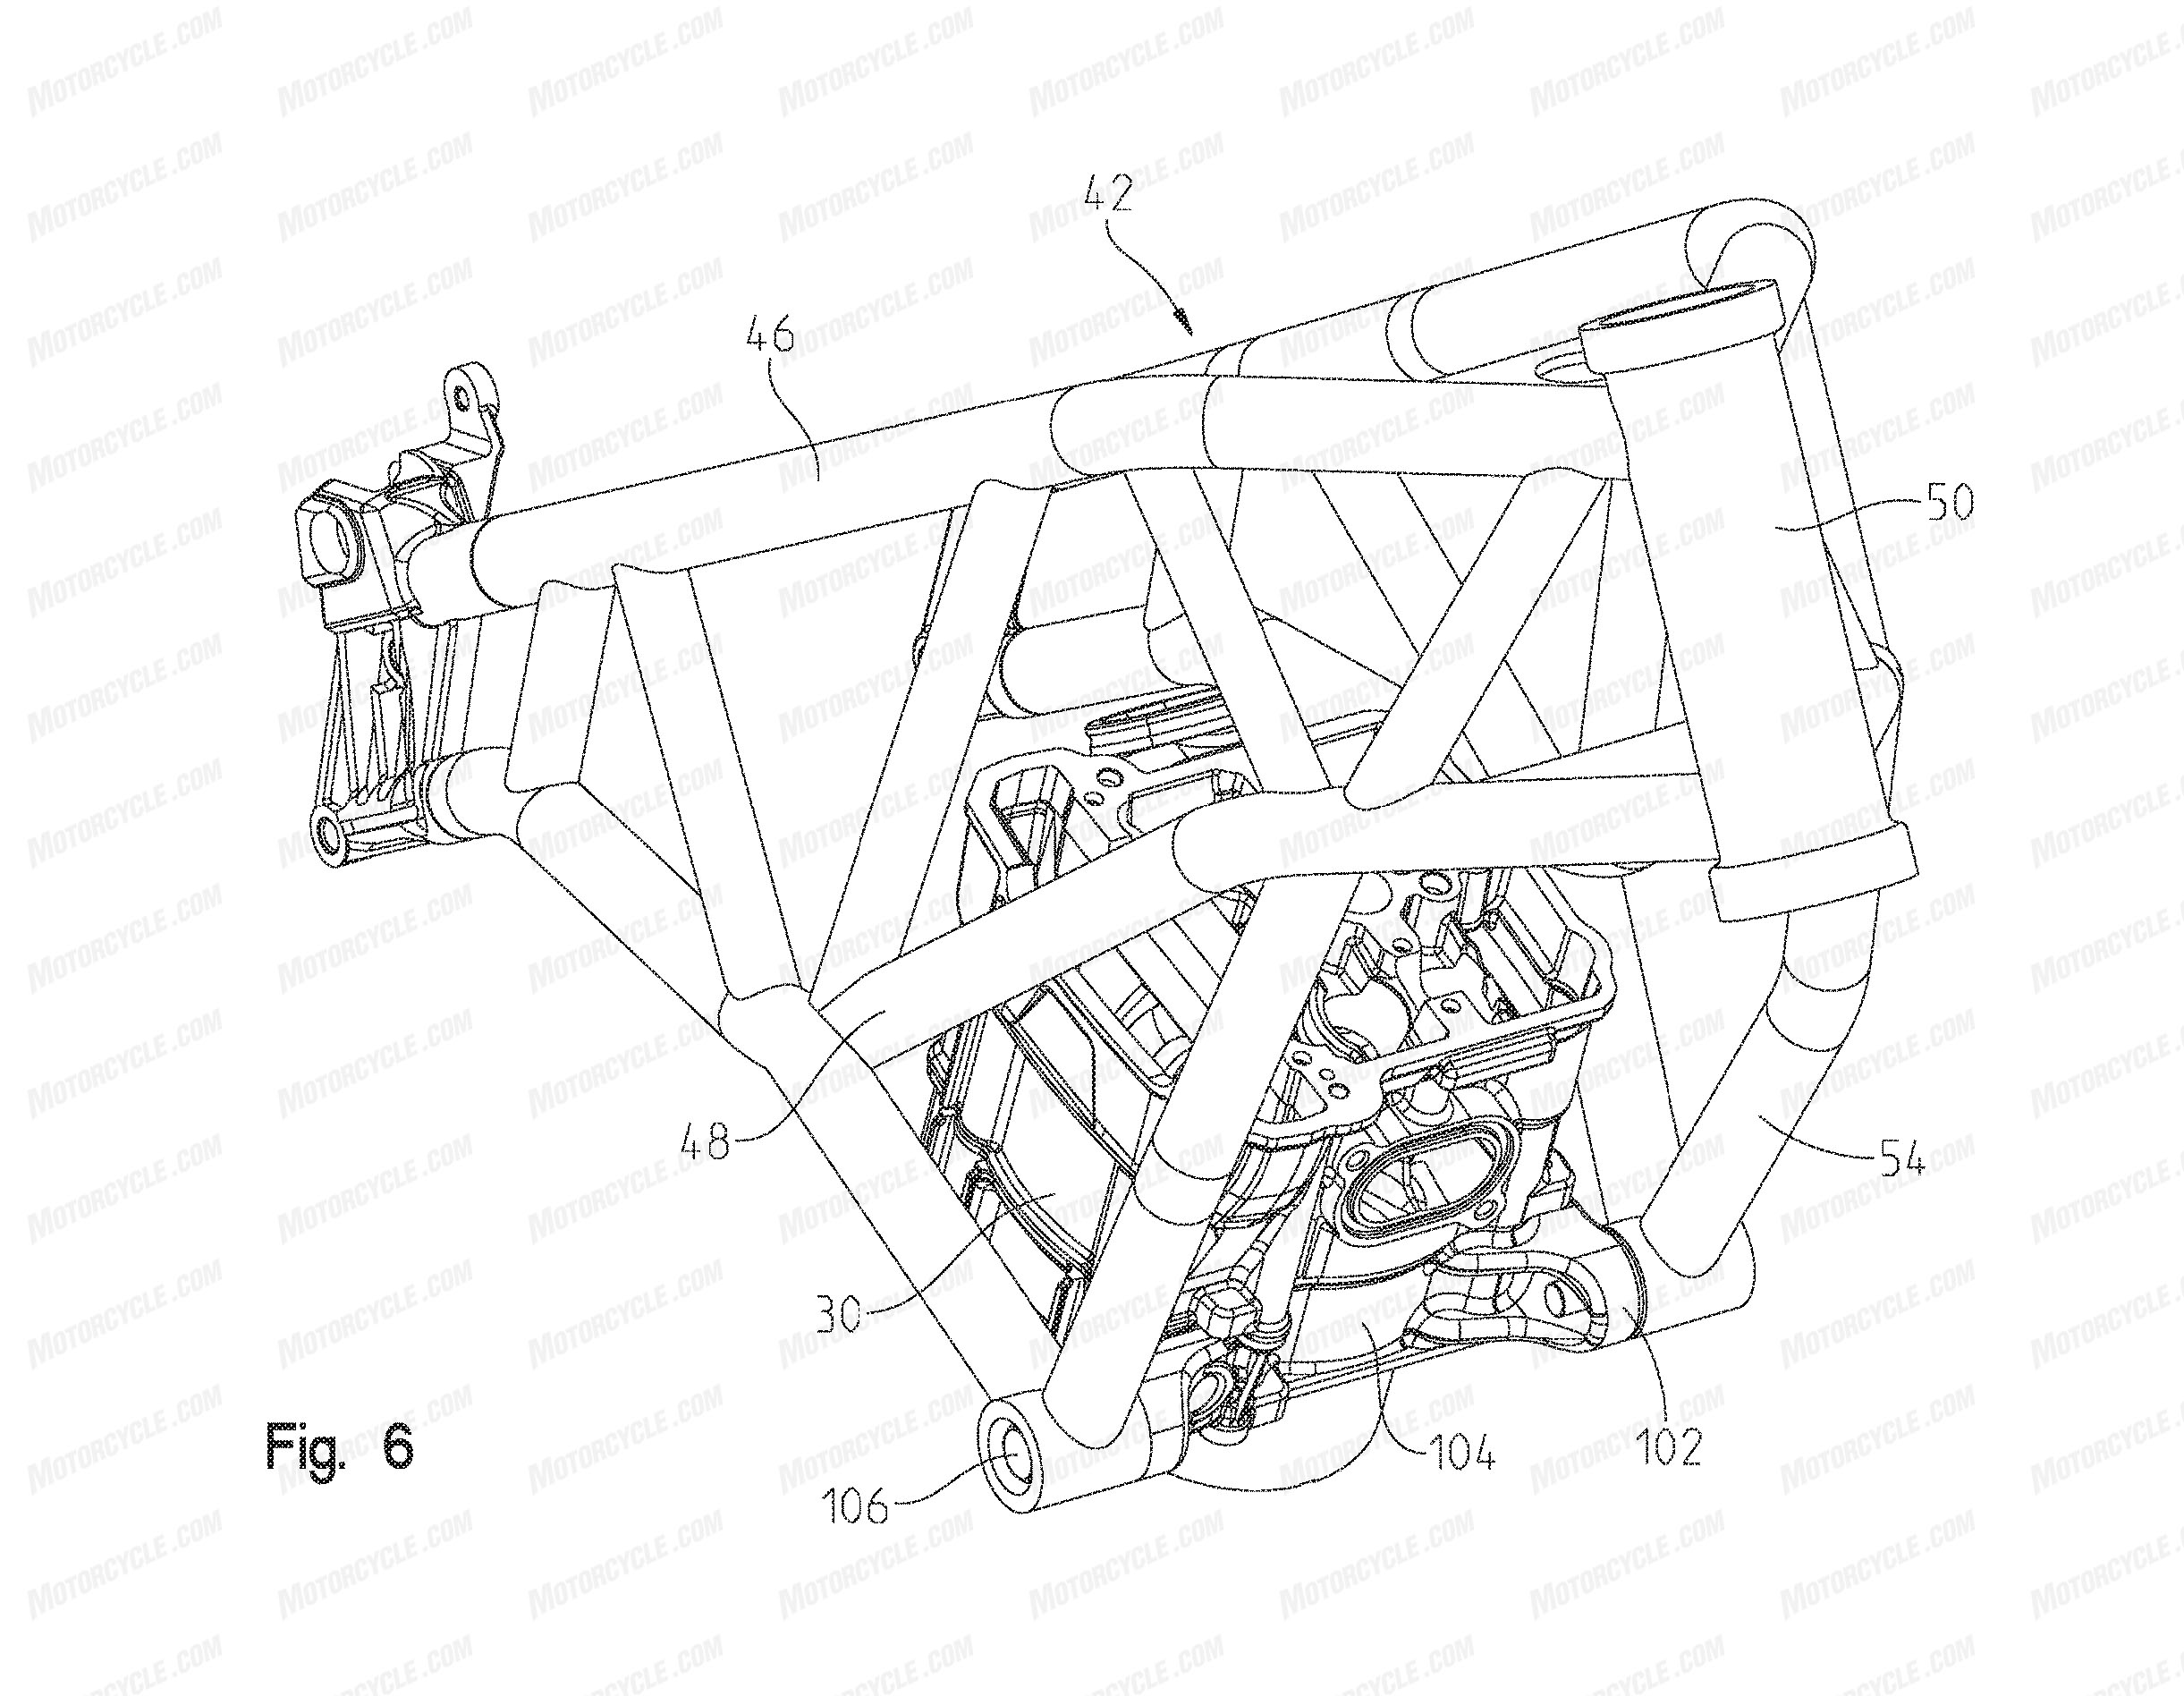 Update Leaked Photo Amp Patent Filings Reveal Details Of